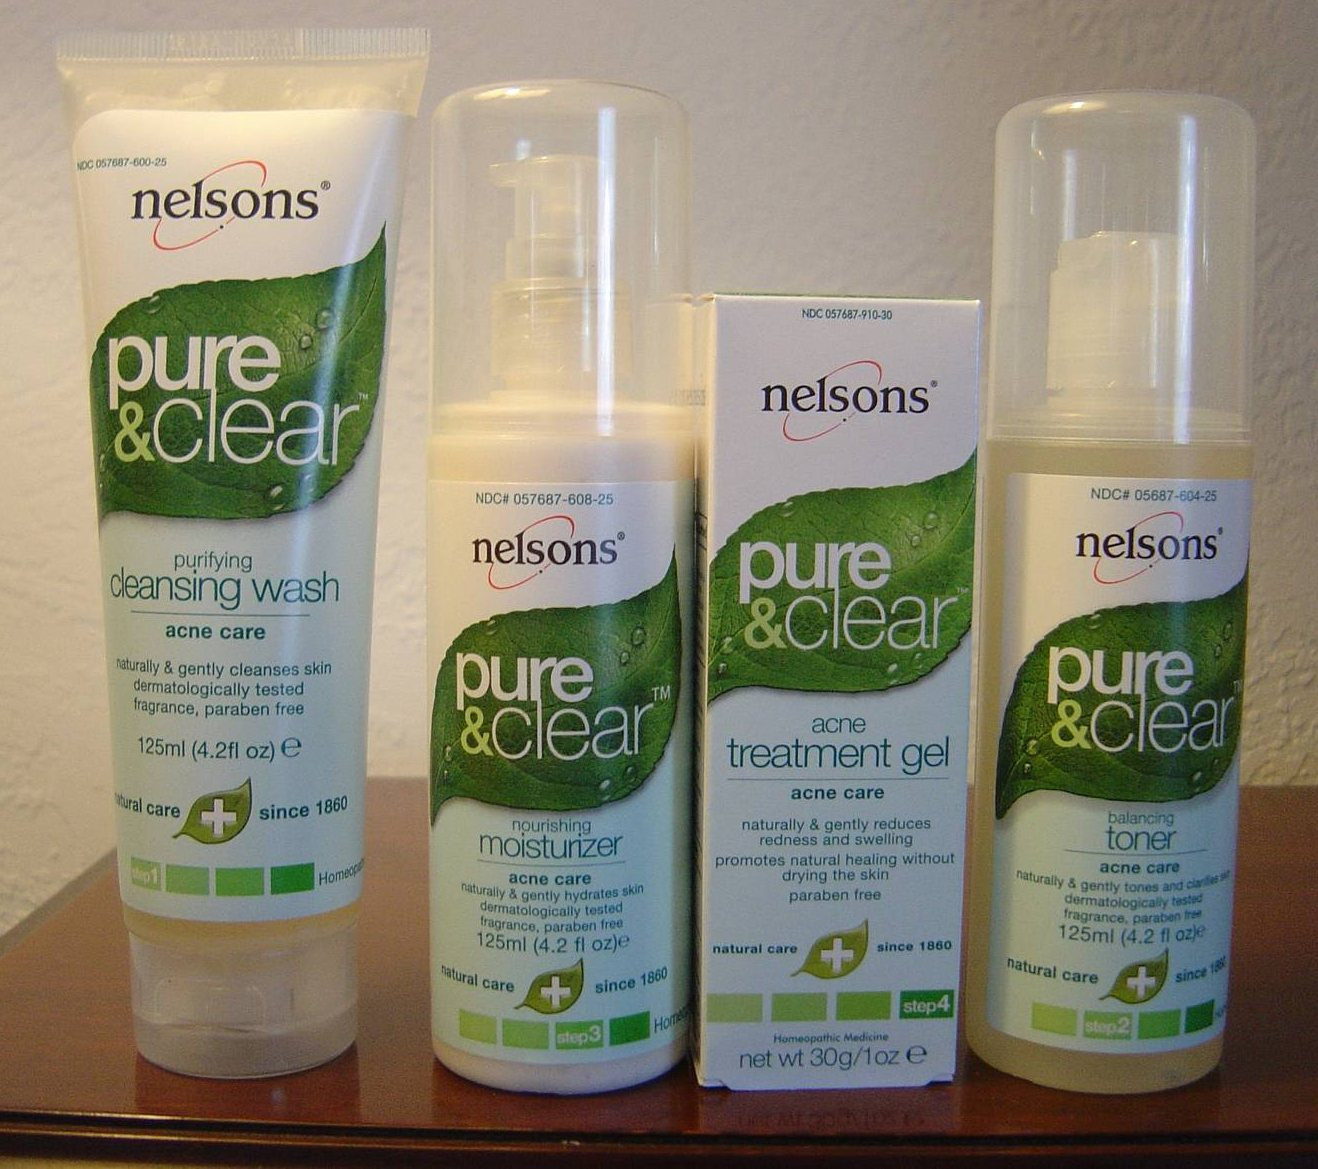 Nelsons' Pure & Clear Skin Care Line